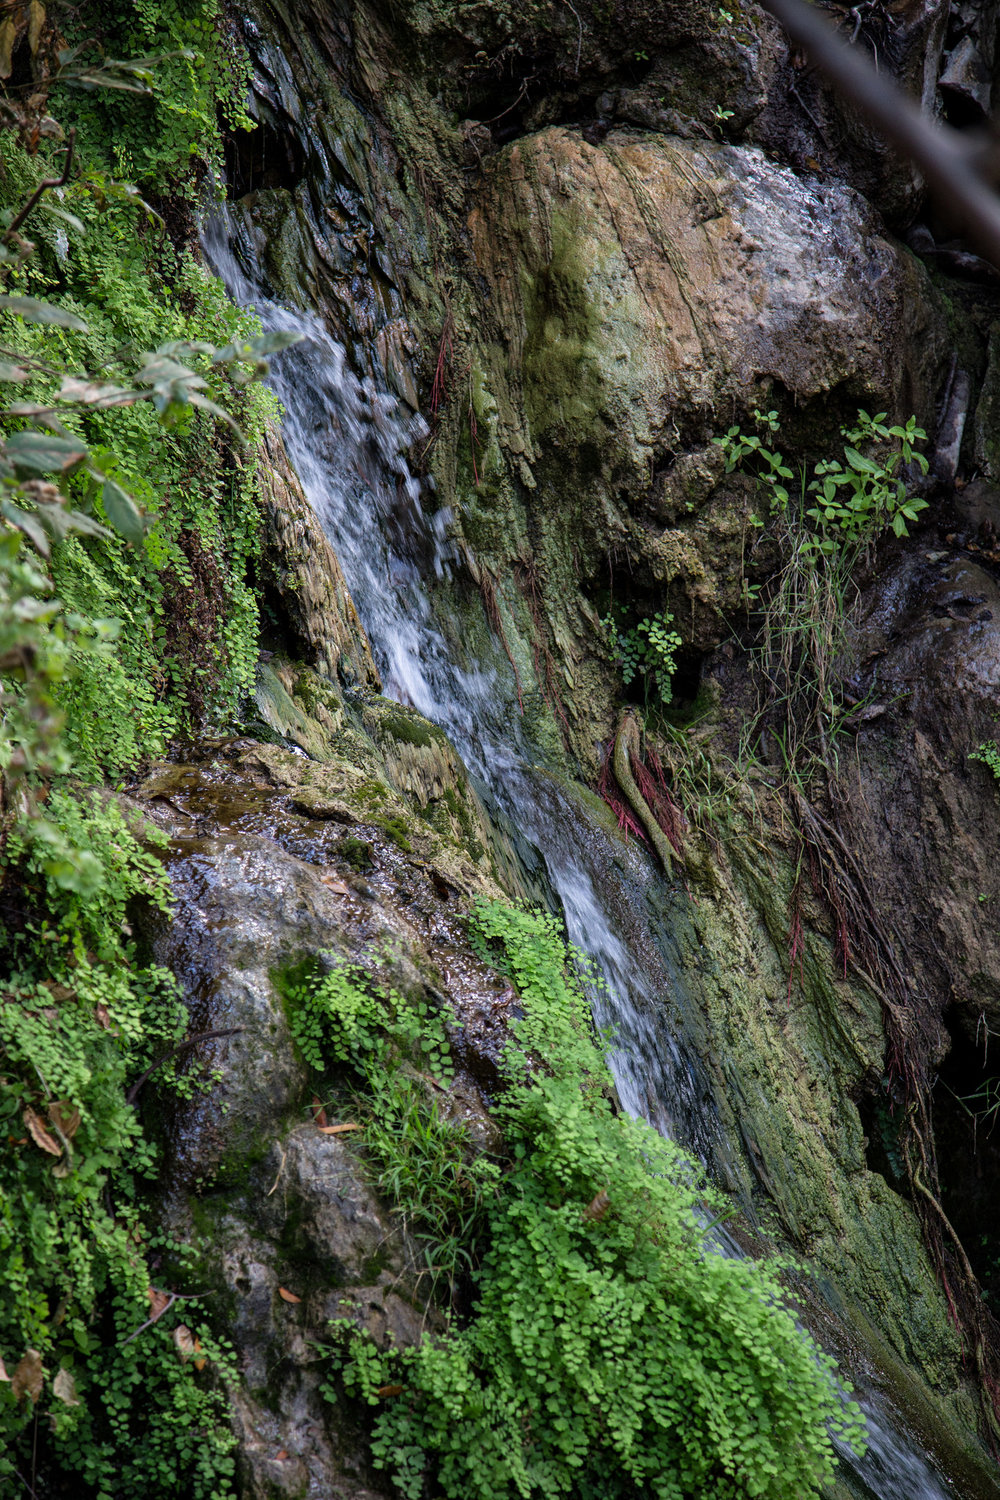 Solstice Canyon Falls.  It's a little waterfall, but it's very pretty.  Beautiful maidenhair fern along the canyon walls.